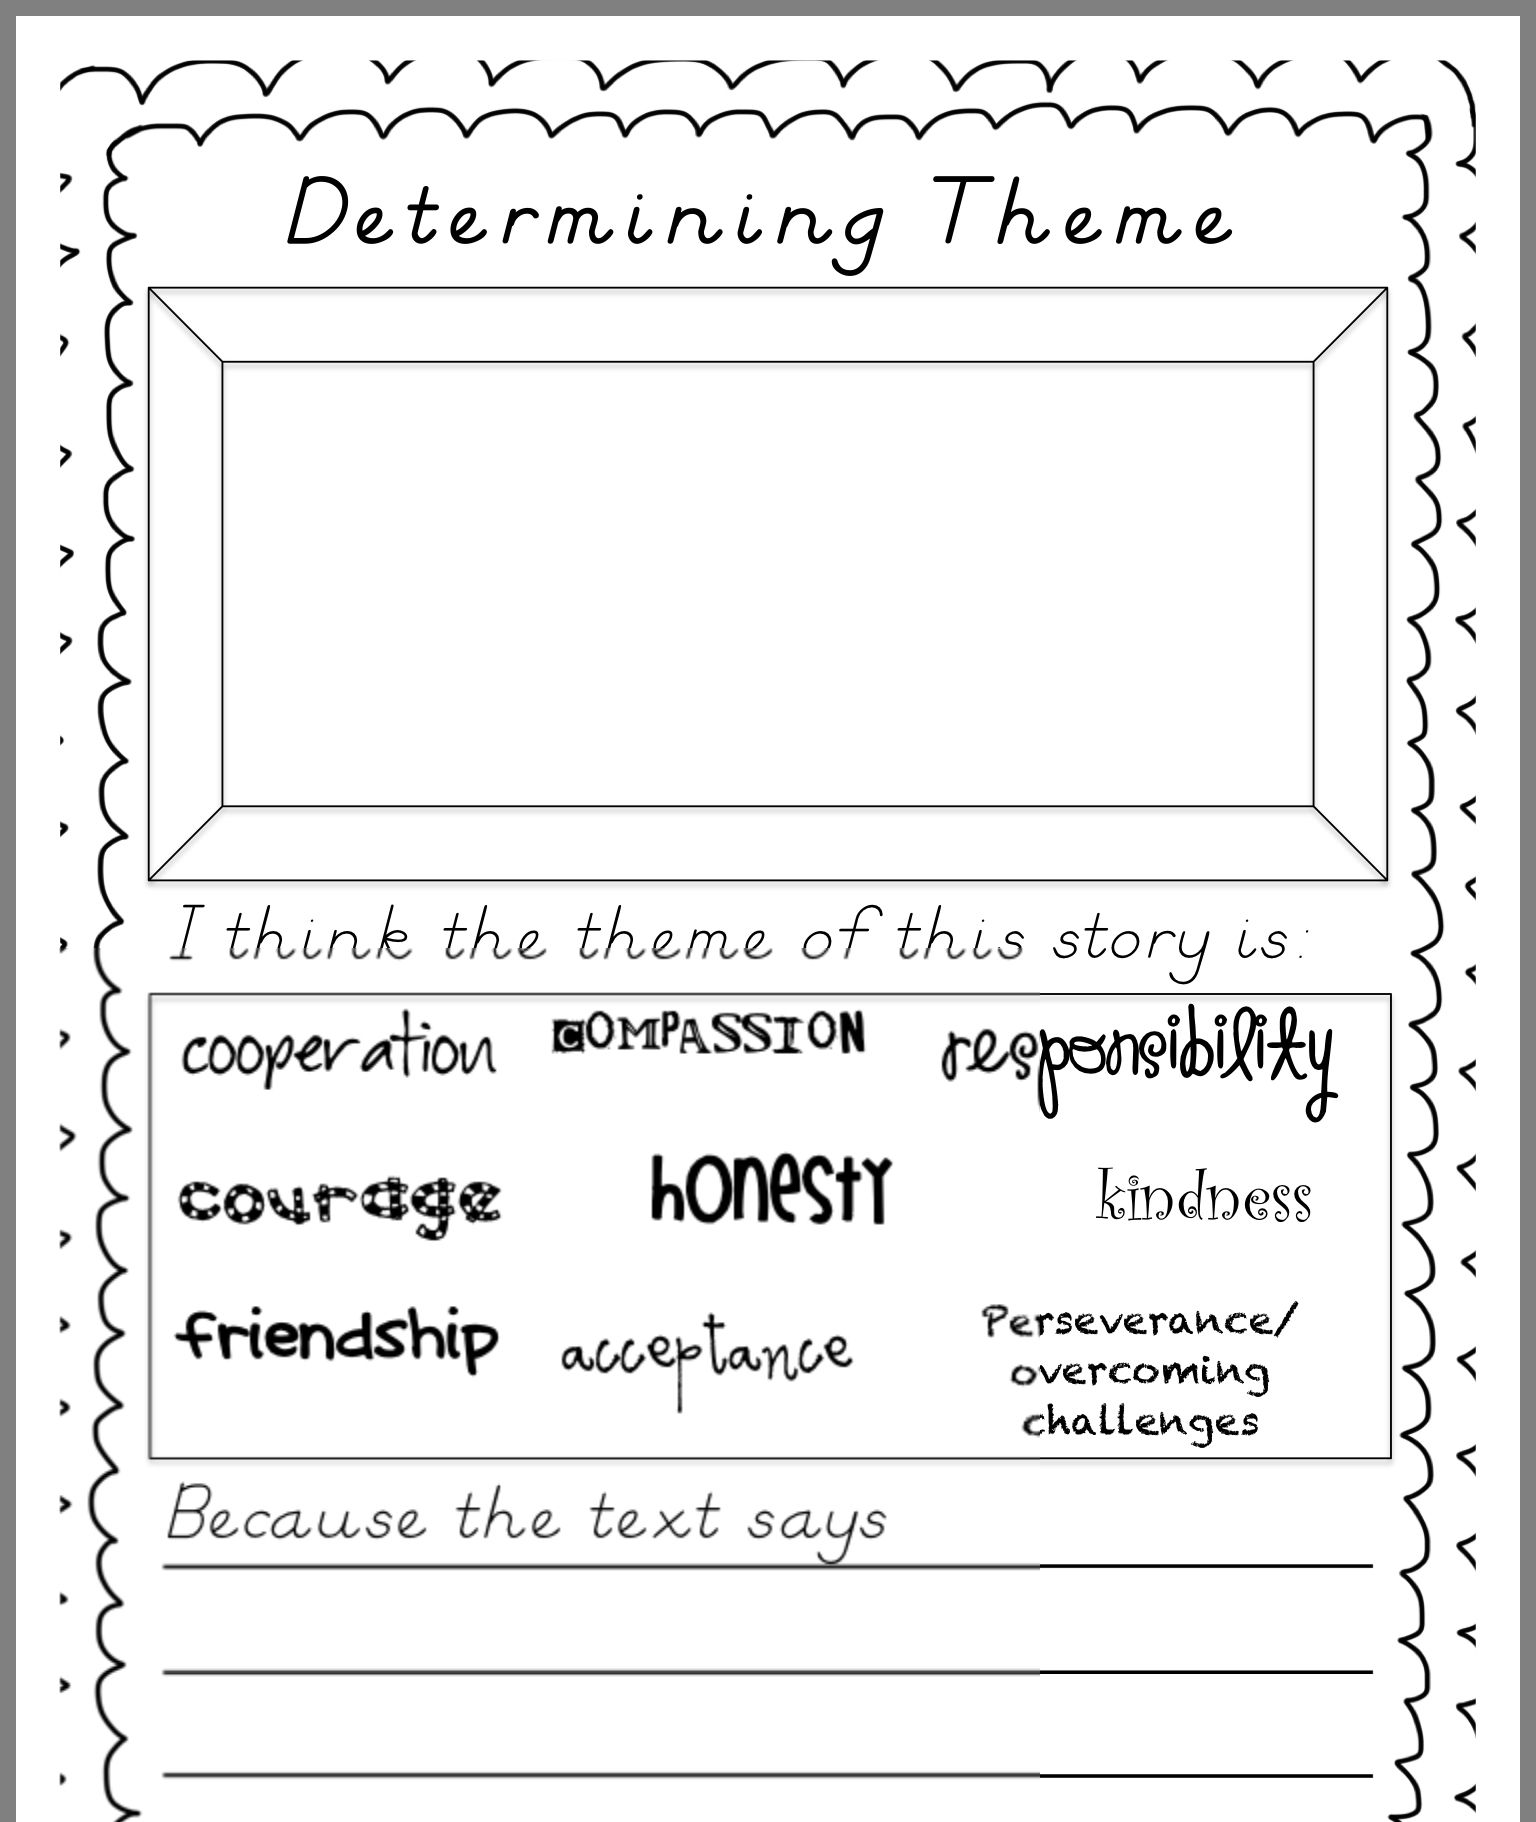 Pin By Stephanie Wiese On Theme Central Message Reading Themes Teaching Themes